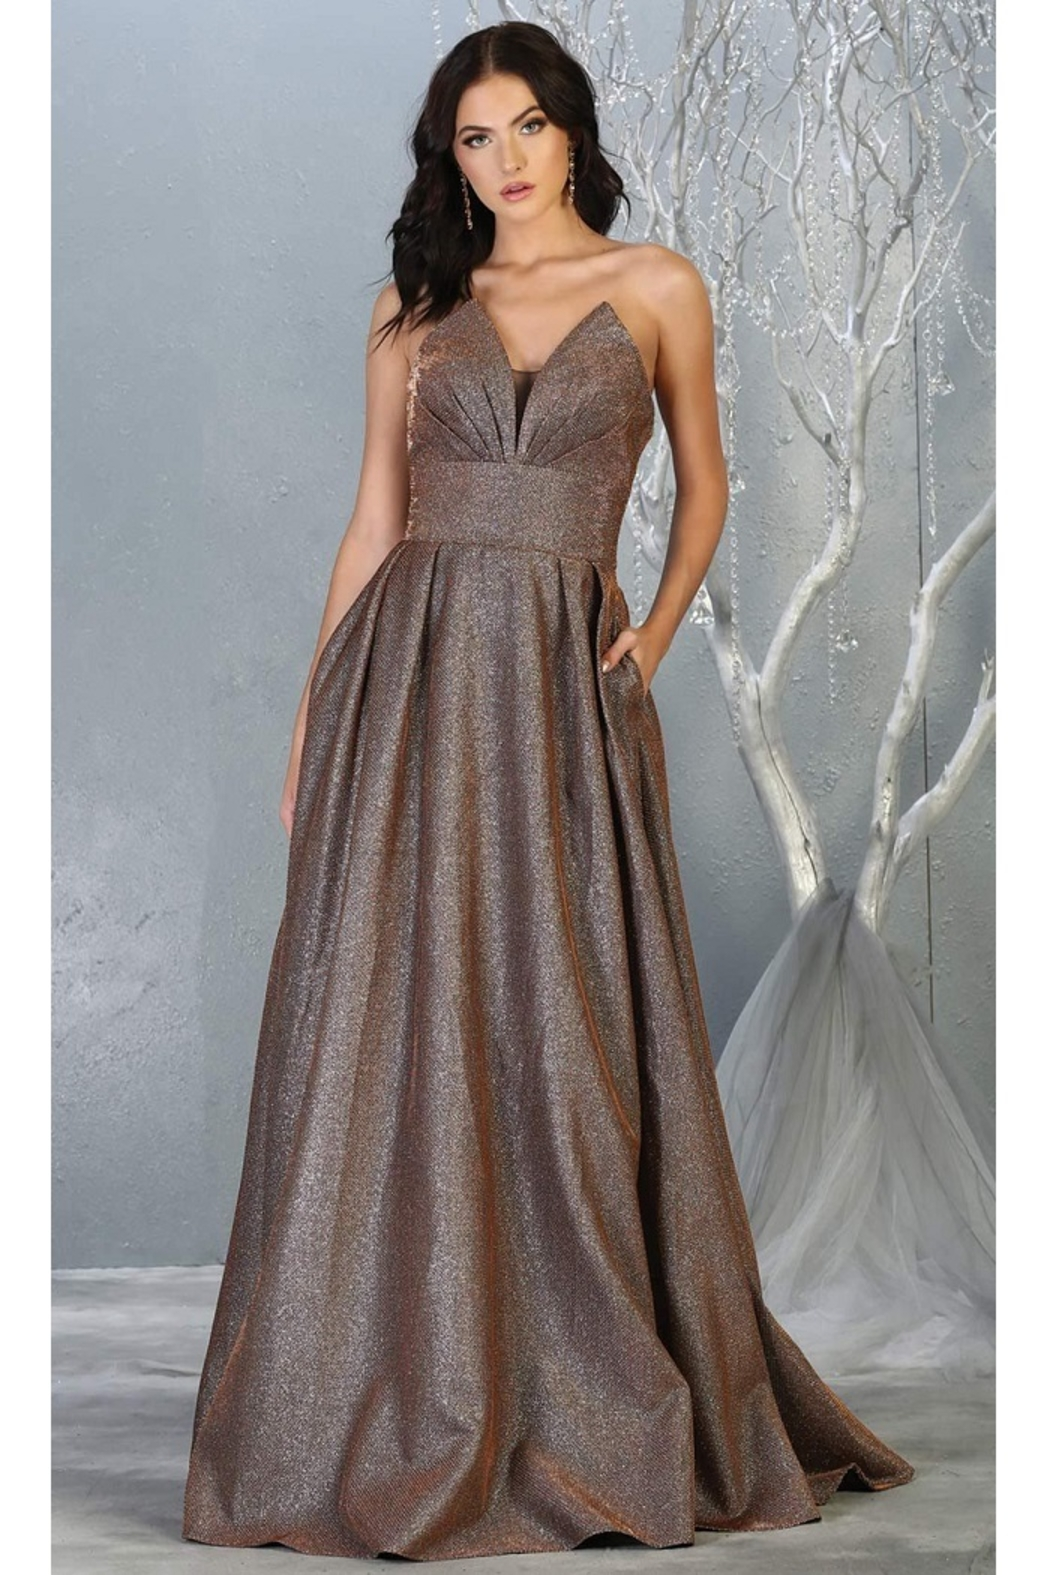 May Queen  Bronze Strapless A-Line Formal Long Dress - Main Image